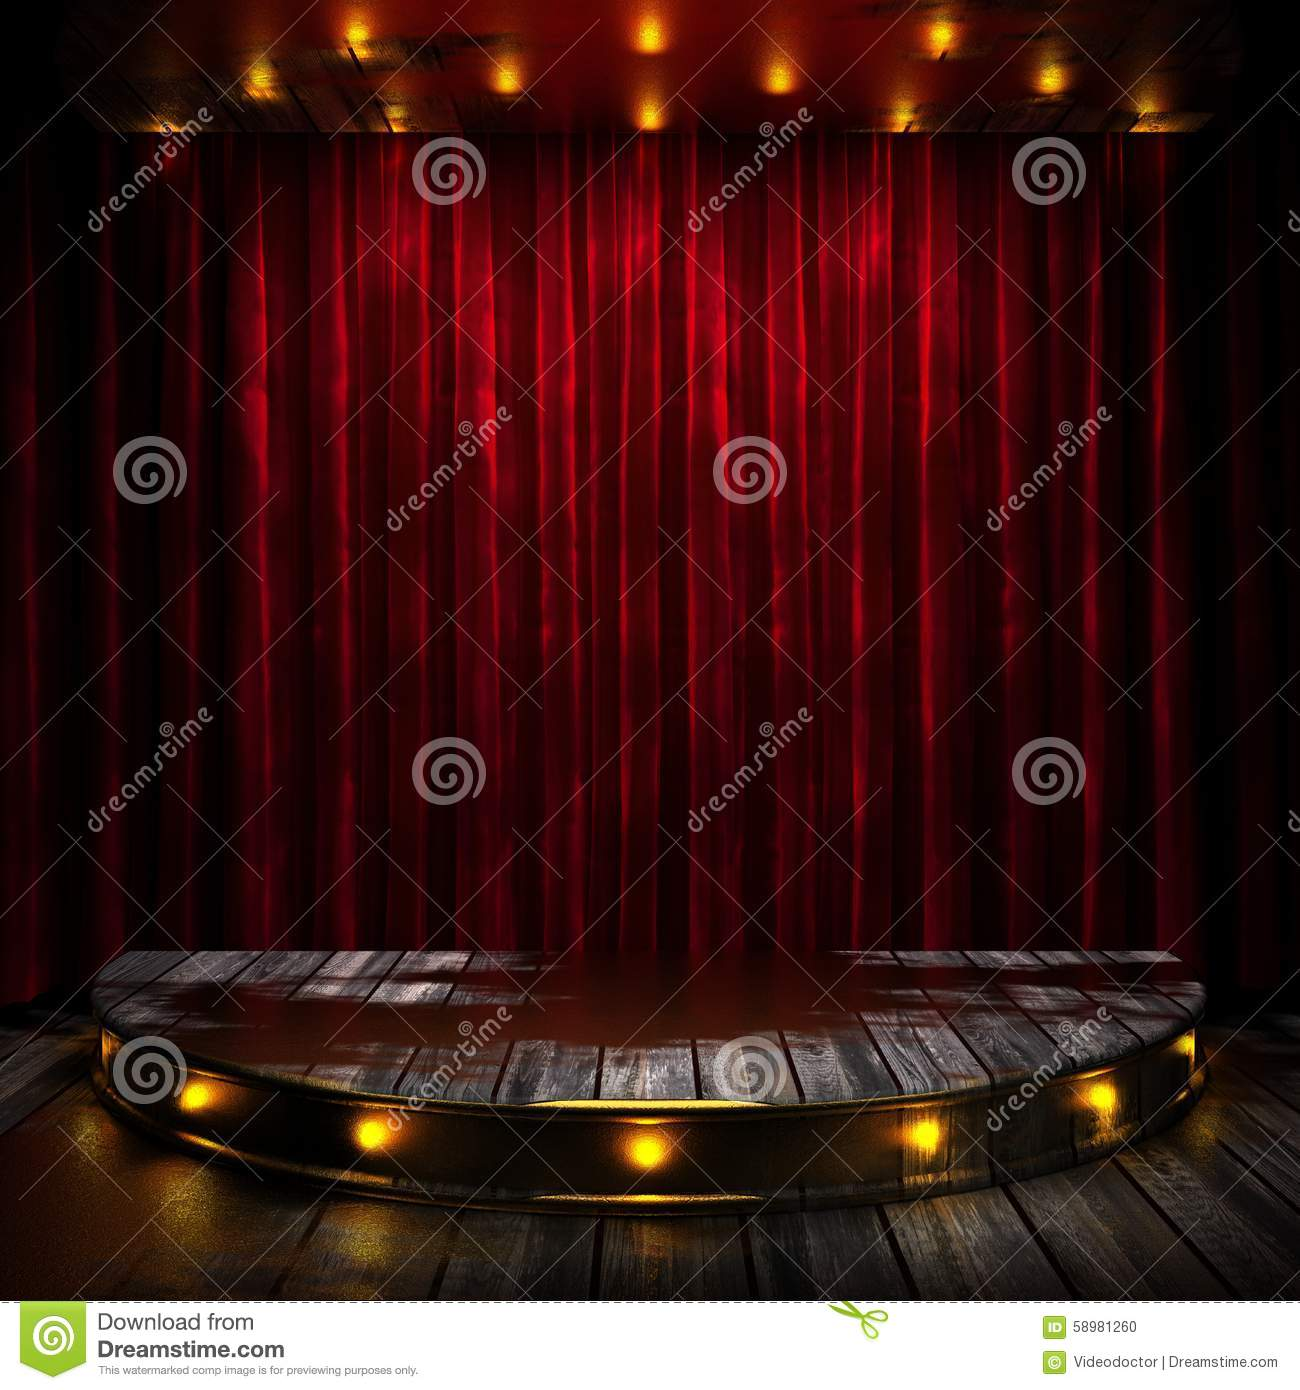 Red stage curtain with lights - Red Curtain Stage With Lights